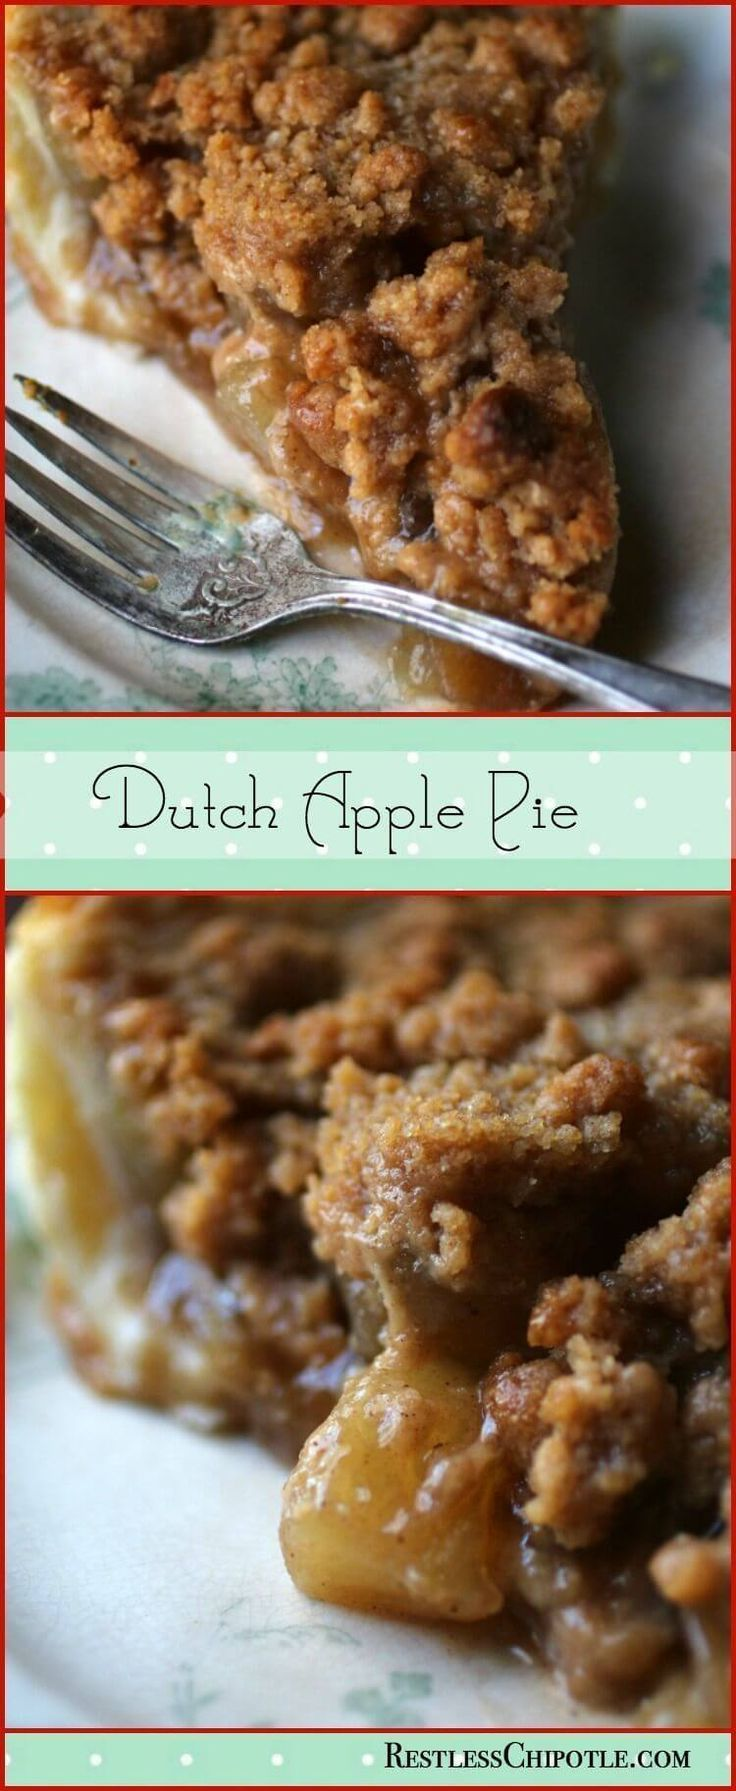 This easy Dutch Apple pie recipe is the BEST! It has a crumbly buttery topping that I just LOVE. Made from scratch it comes out right every time. From http://RestlessChipotle.com